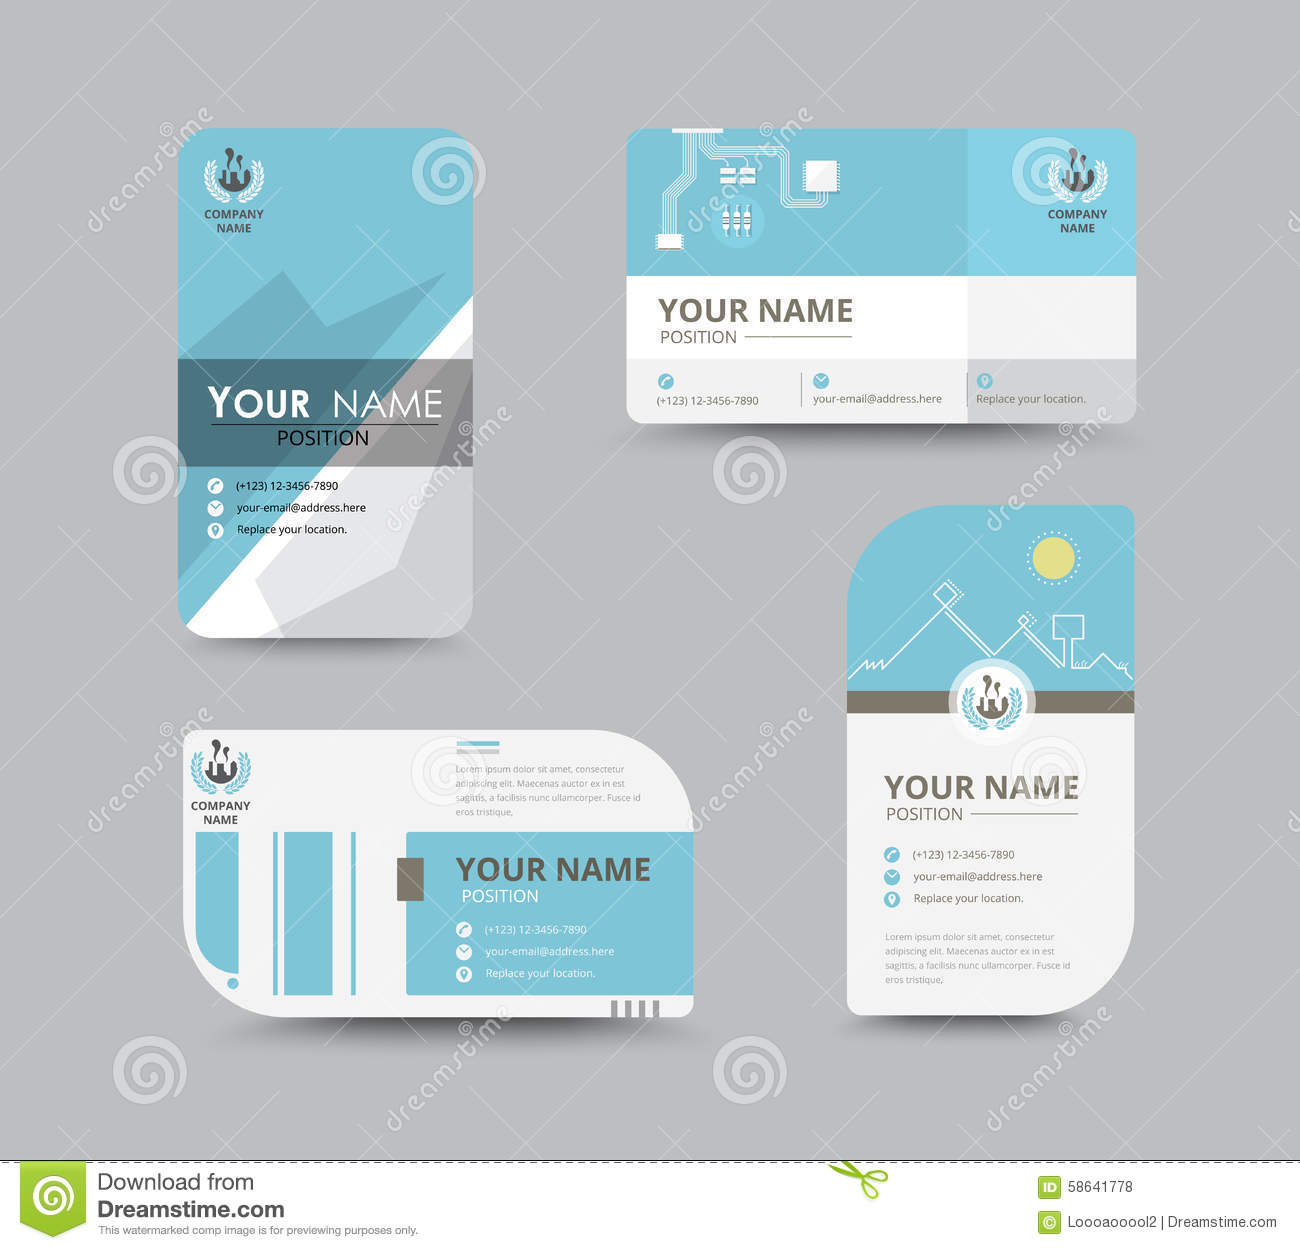 greeting card business plan sample